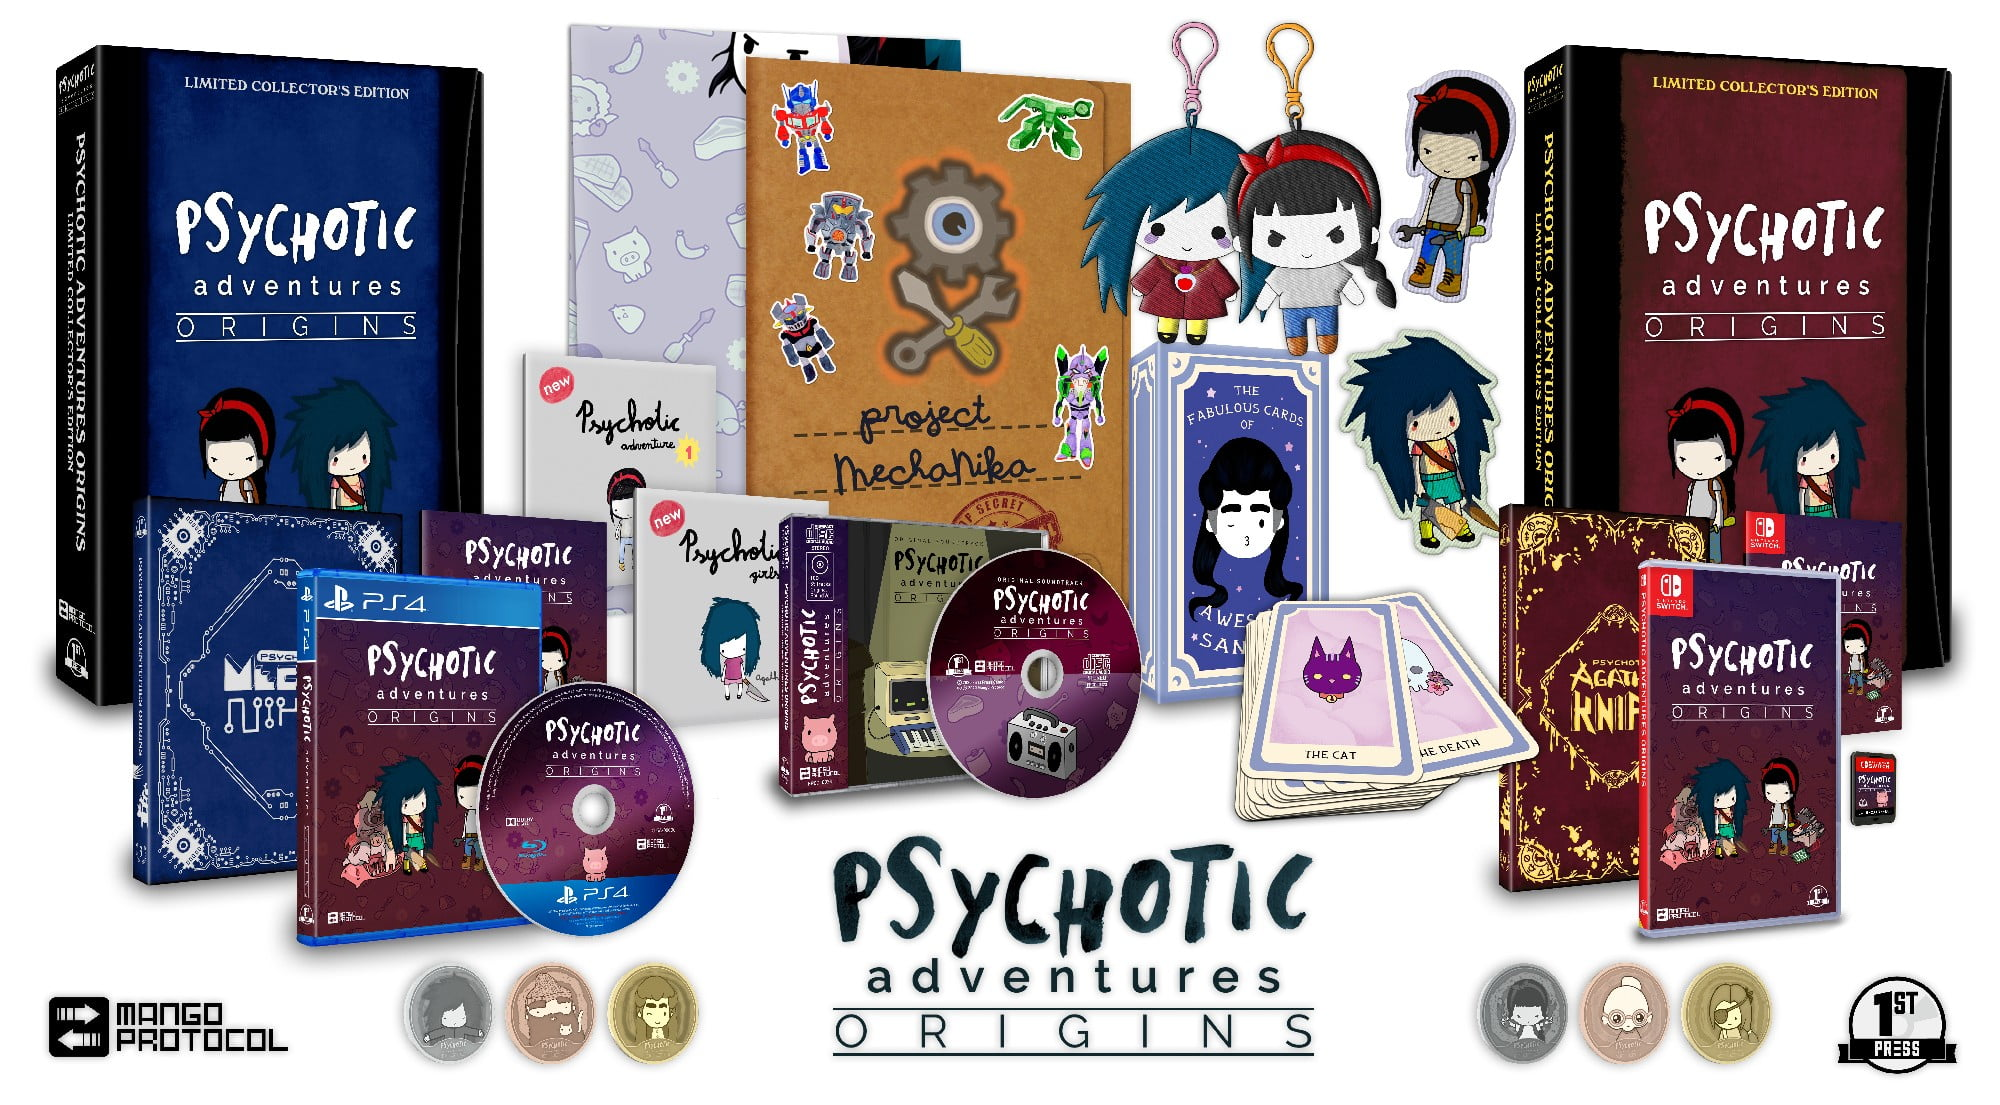 Psychotic Adventures Origins 1